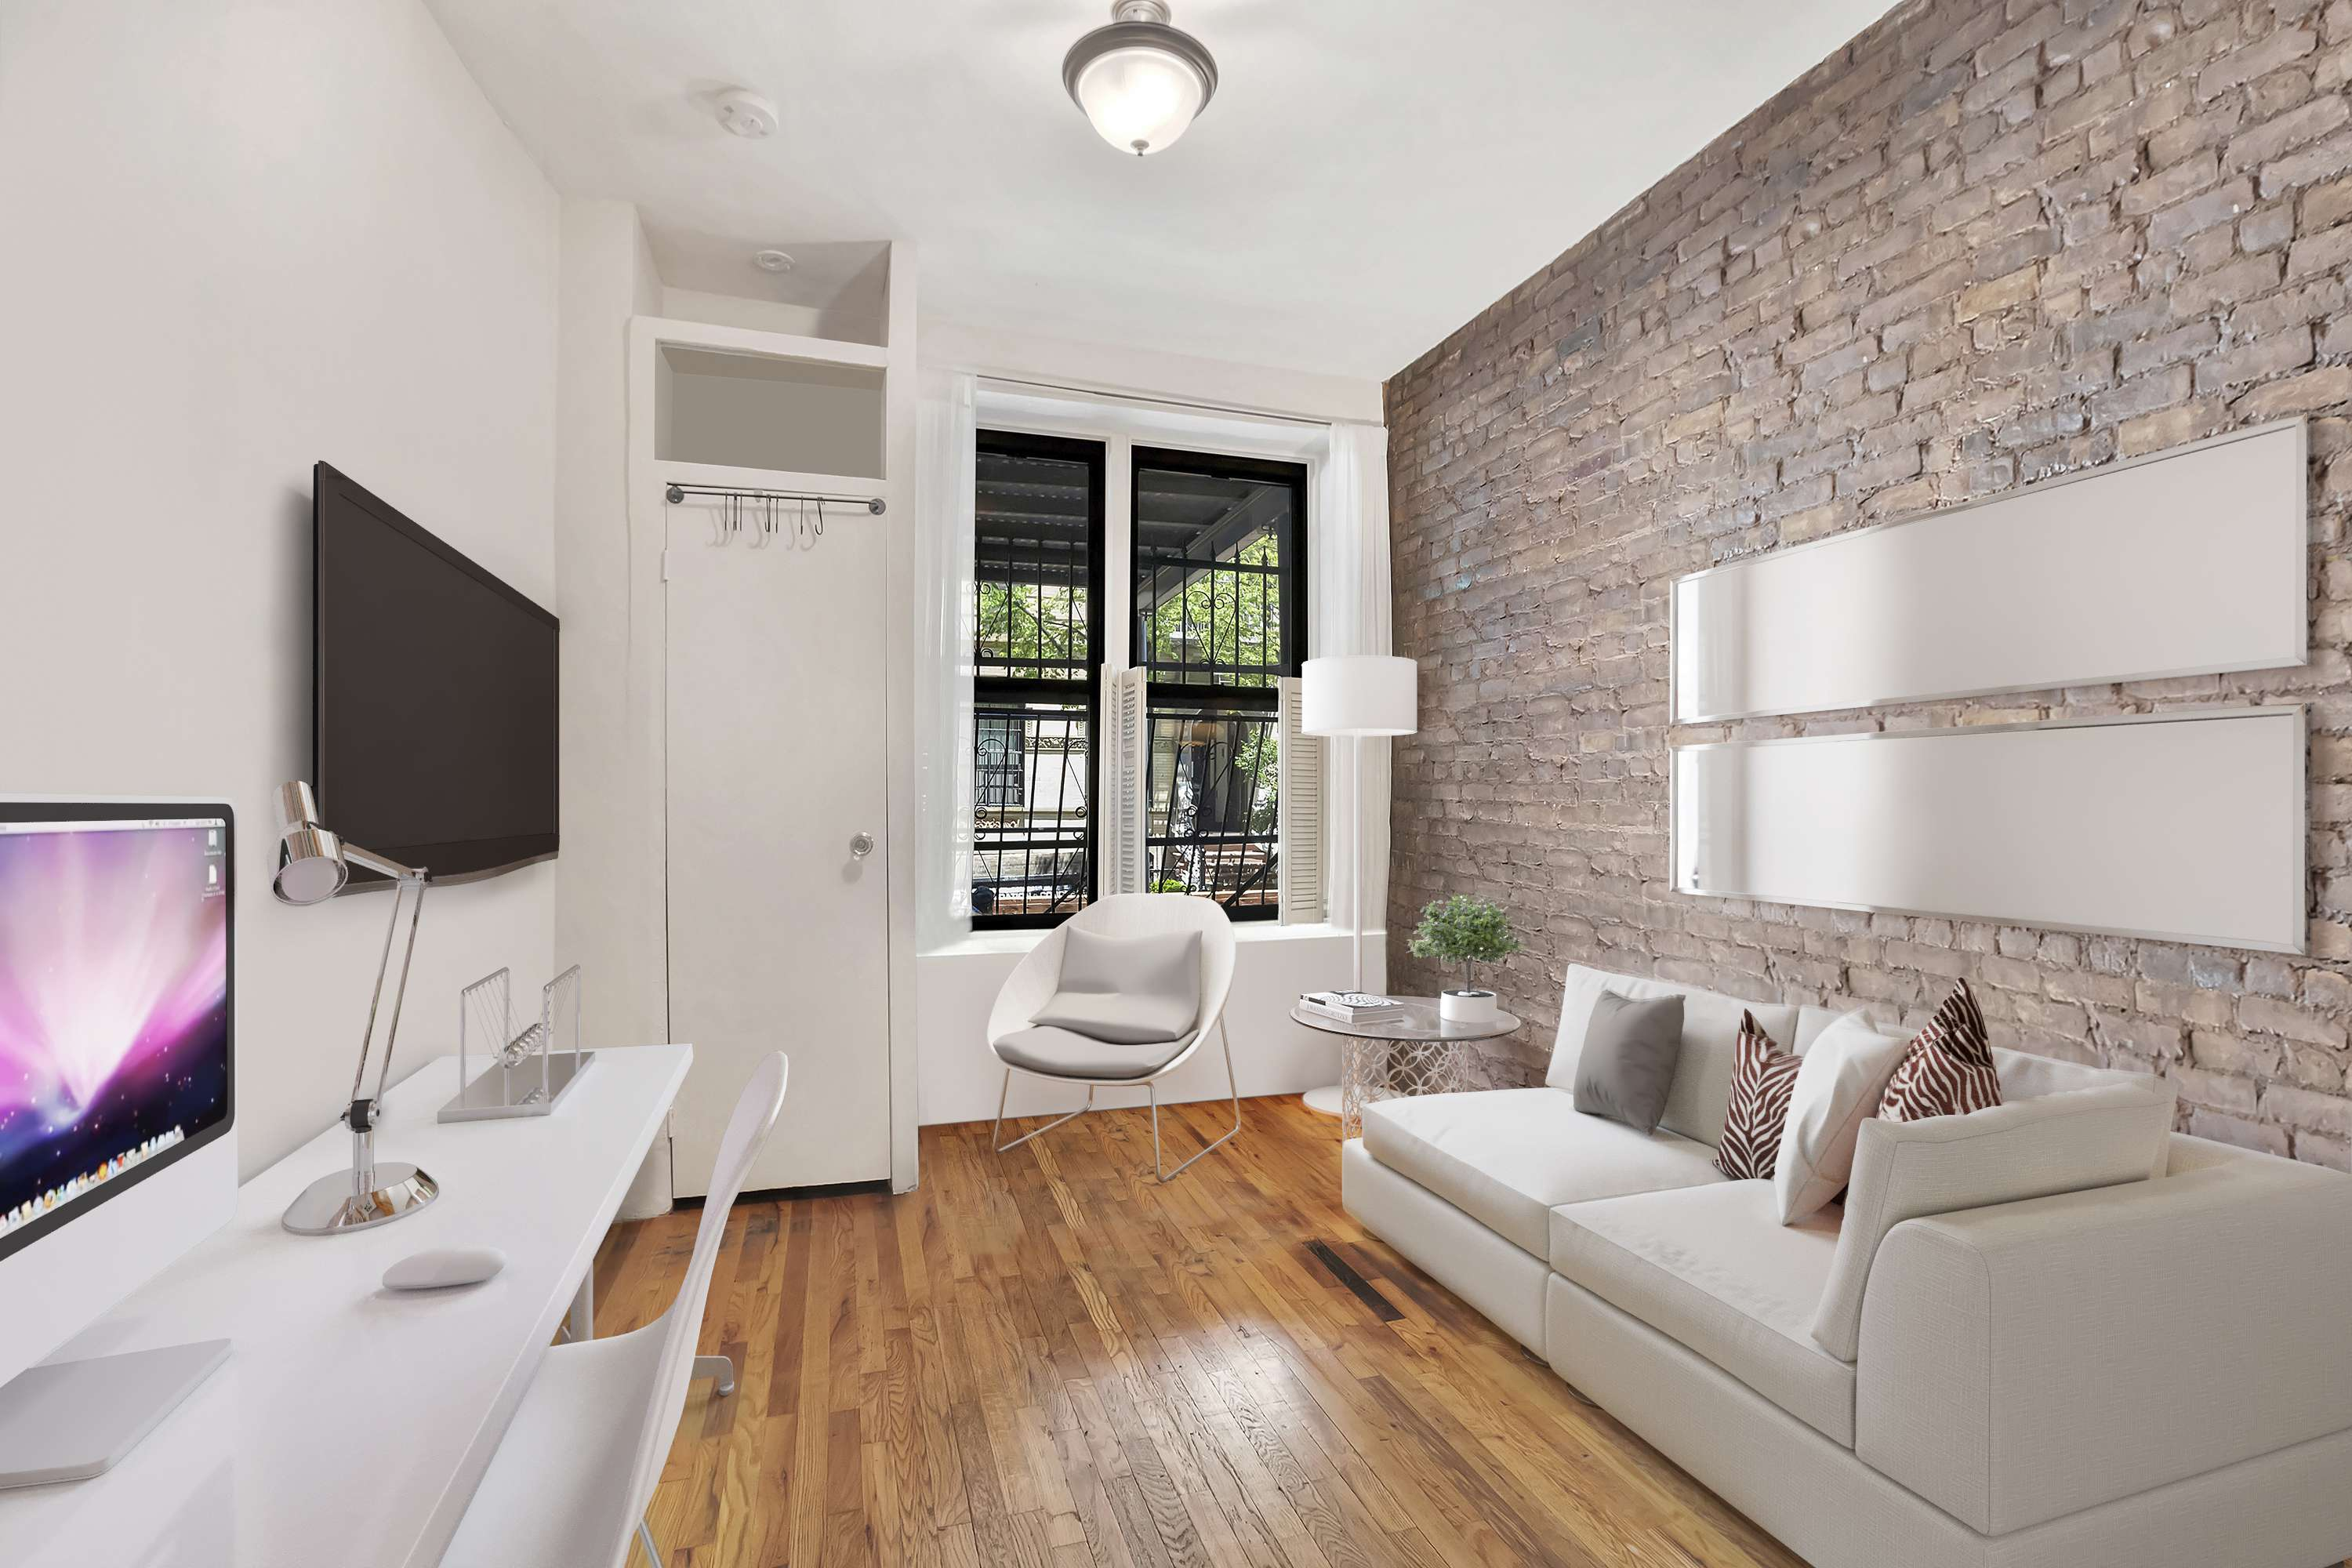 NYC Apartments for $400K: What You Can Buy Right Now ...